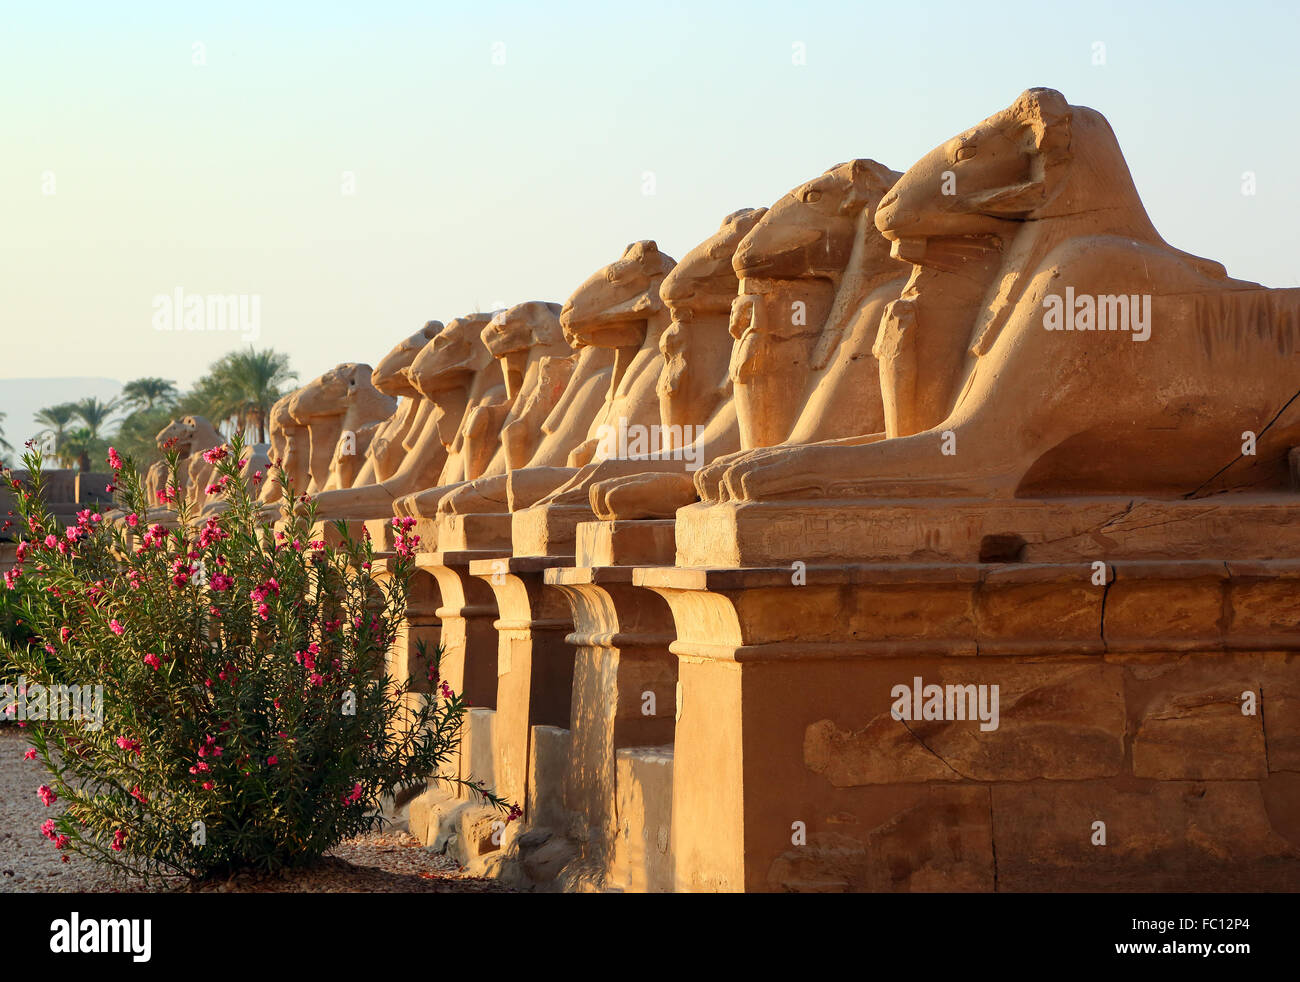 egypt statues of sphinx in karnak temple - Stock Image